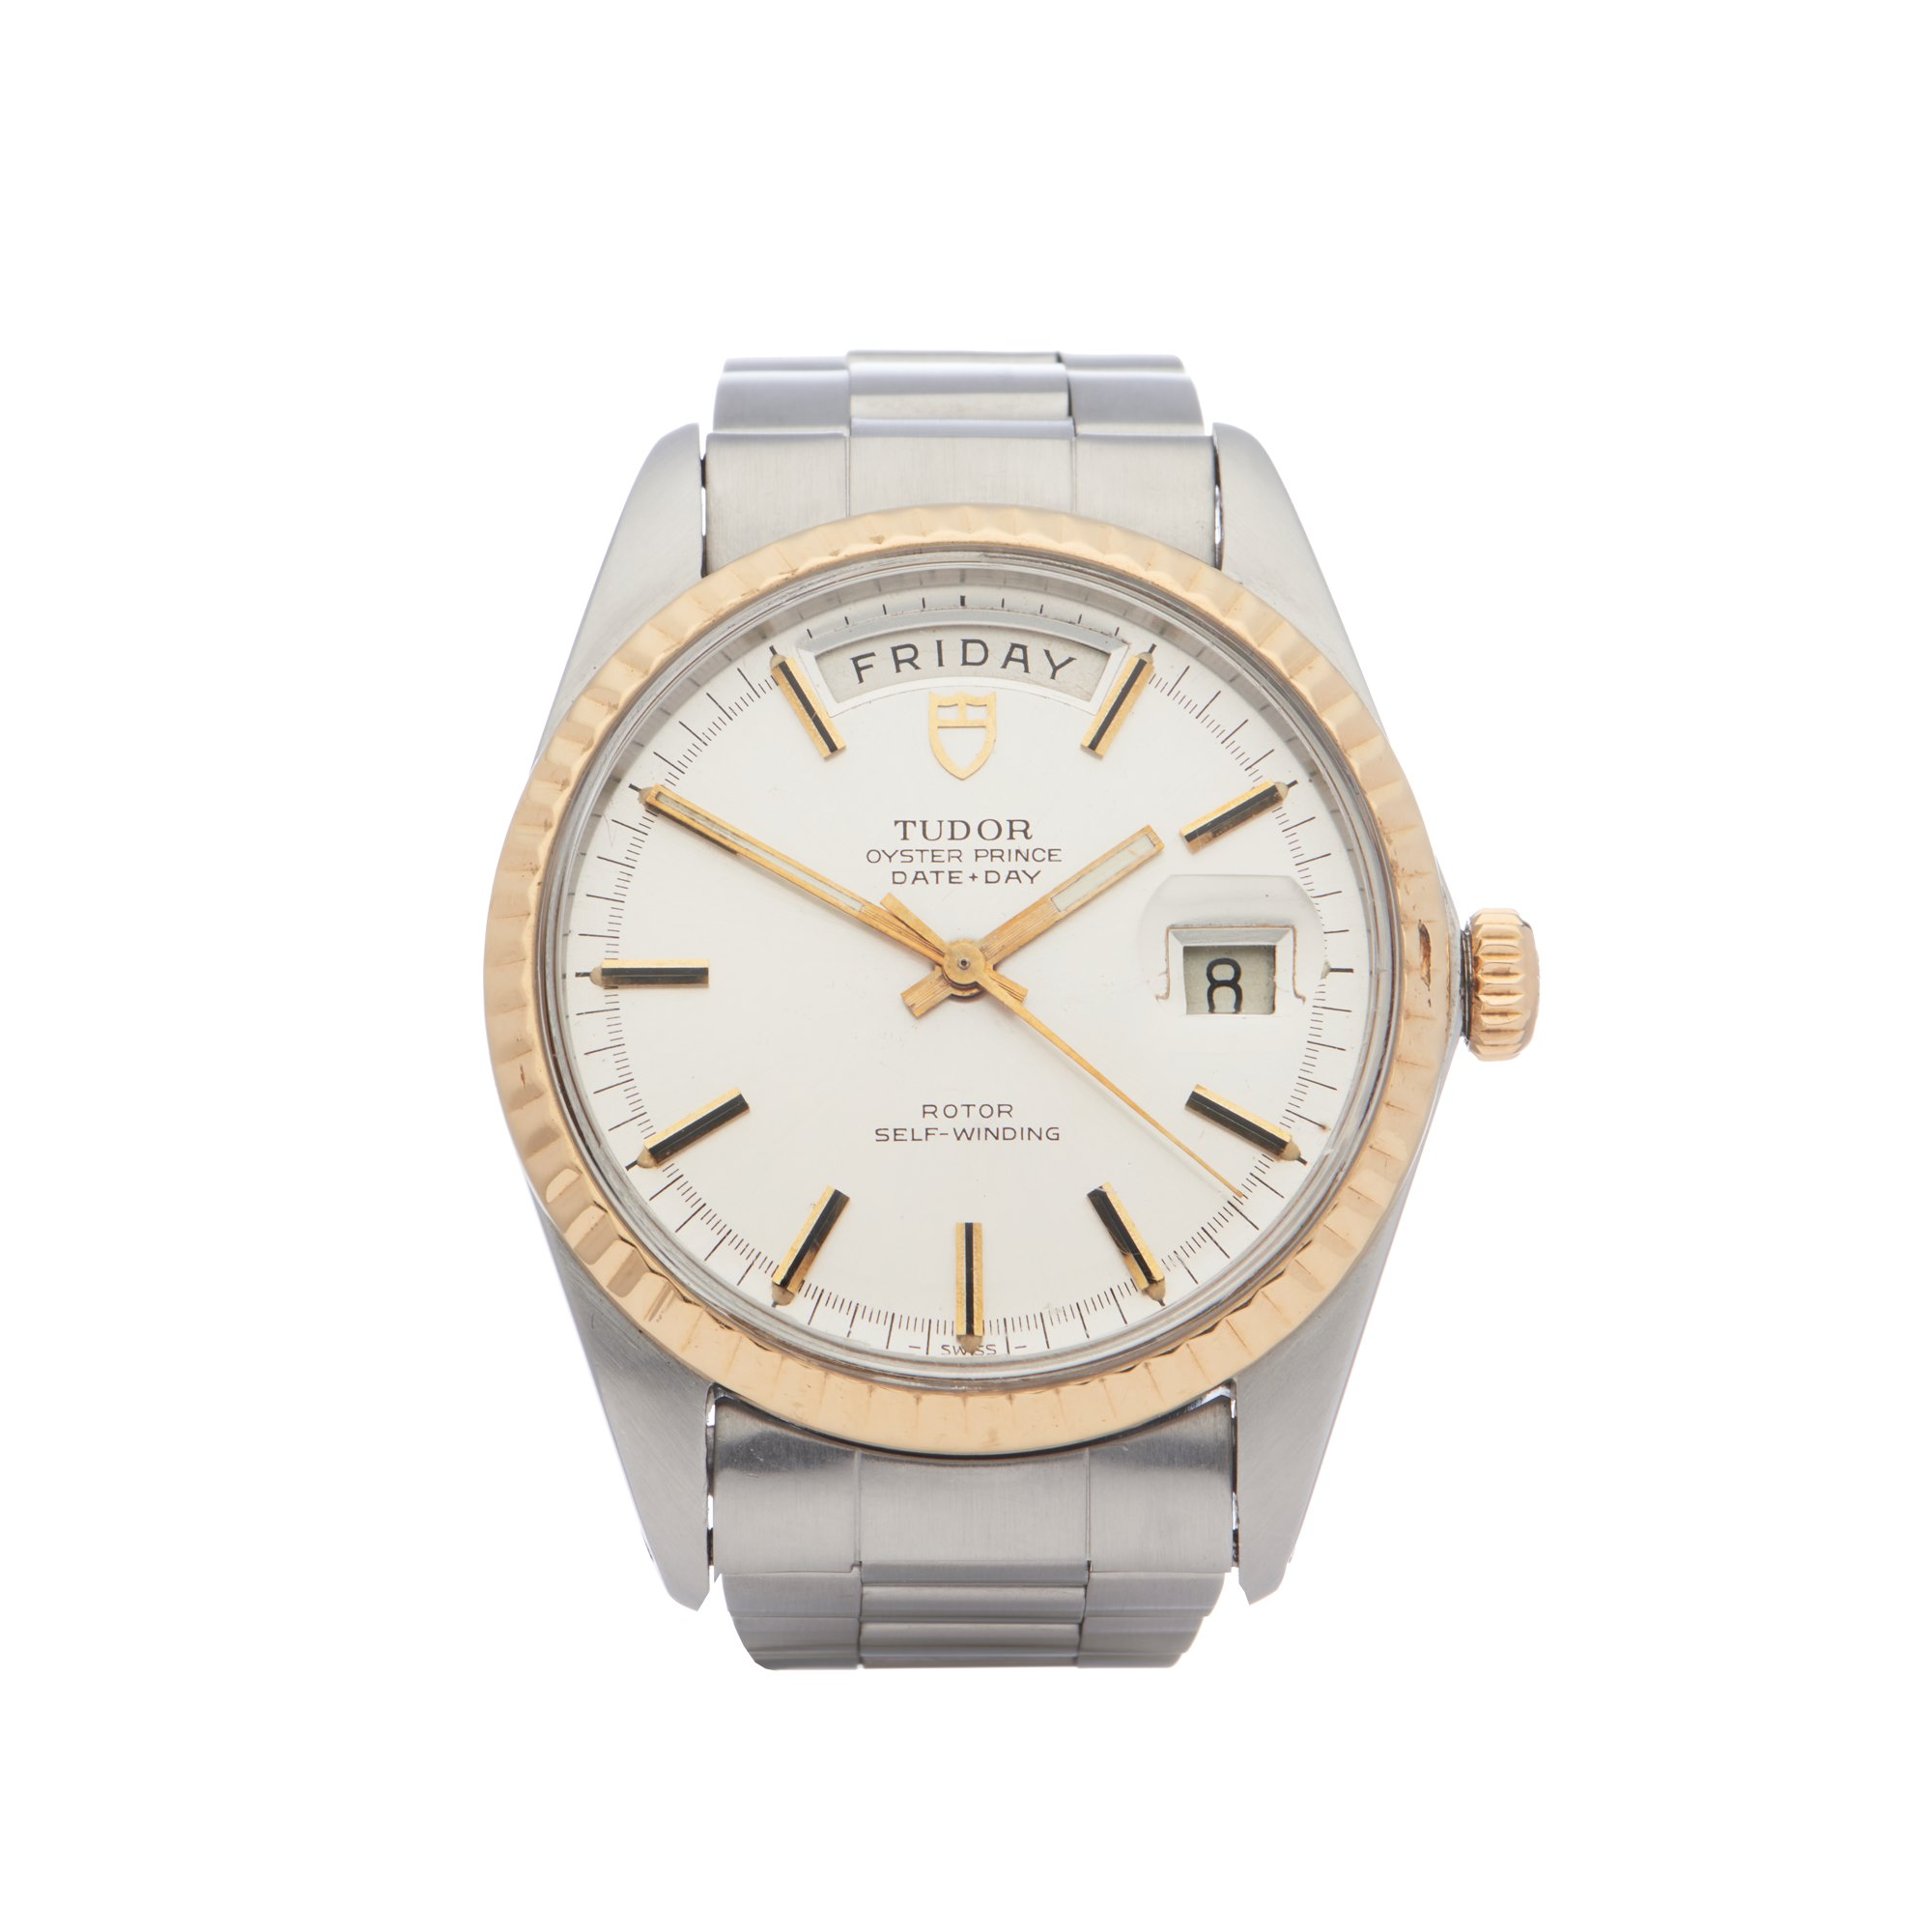 Tudor Date Day 18K Yellow Gold & Stainless Steel 7017/0